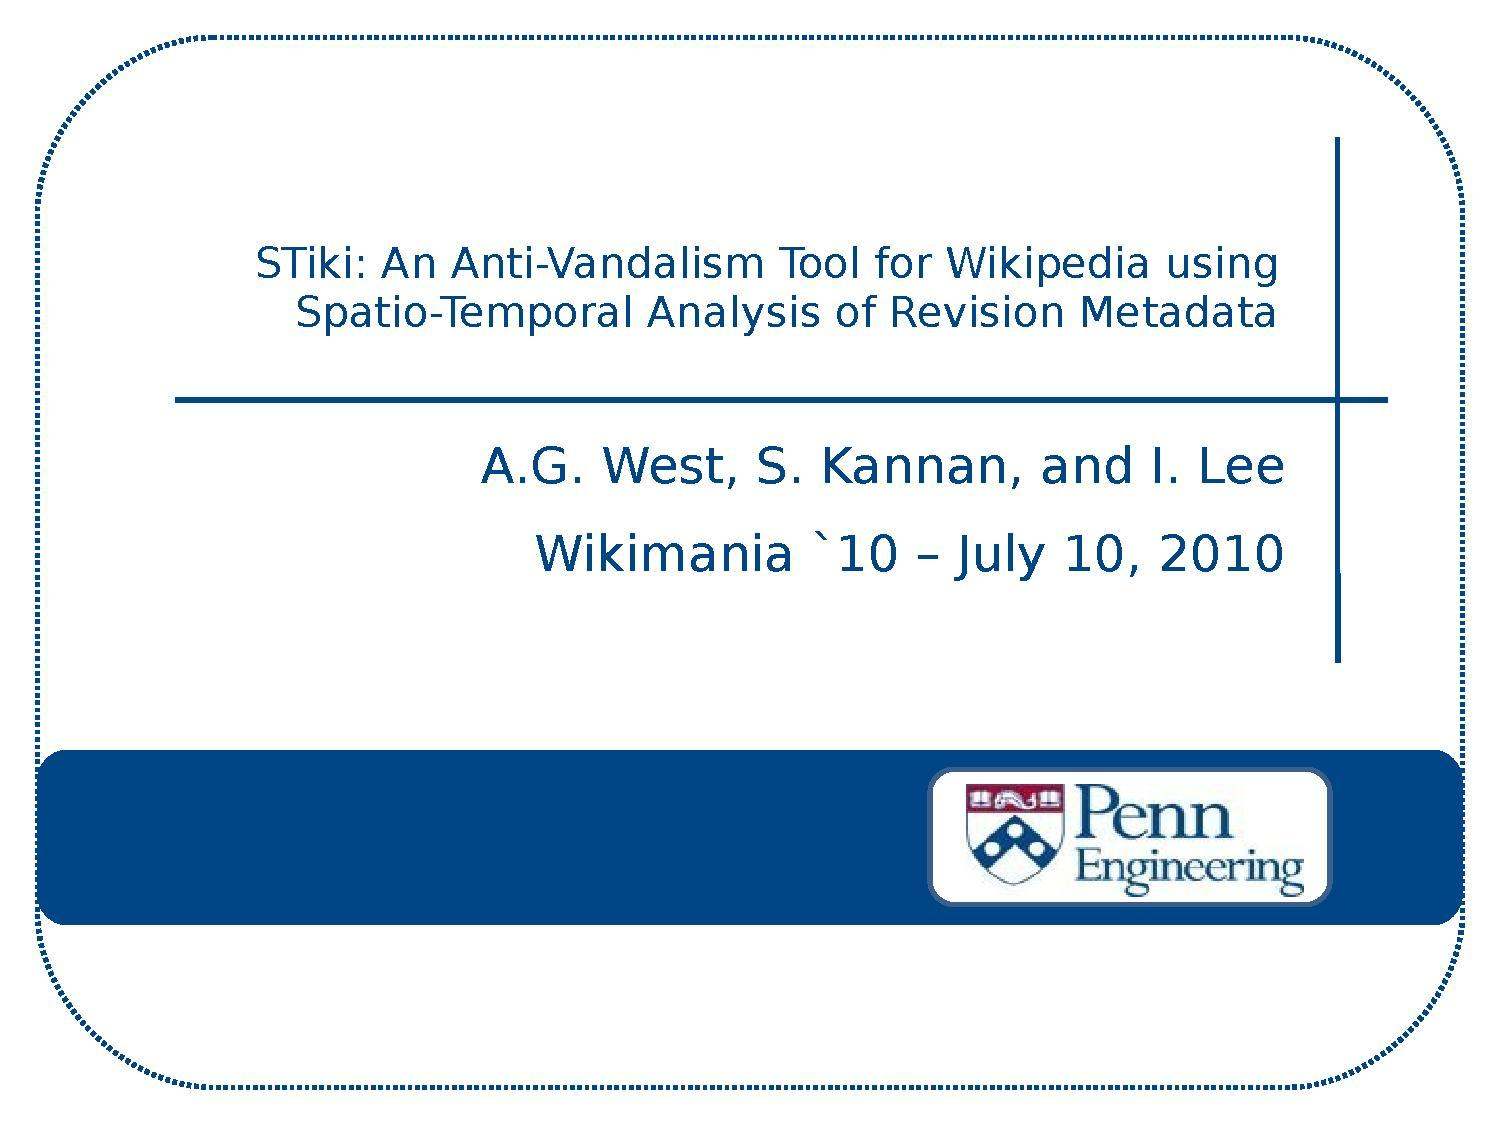 Spatio-Temporal Analysis of Revision Metadata and the STiki Anti-Vandalism Tool.pdf